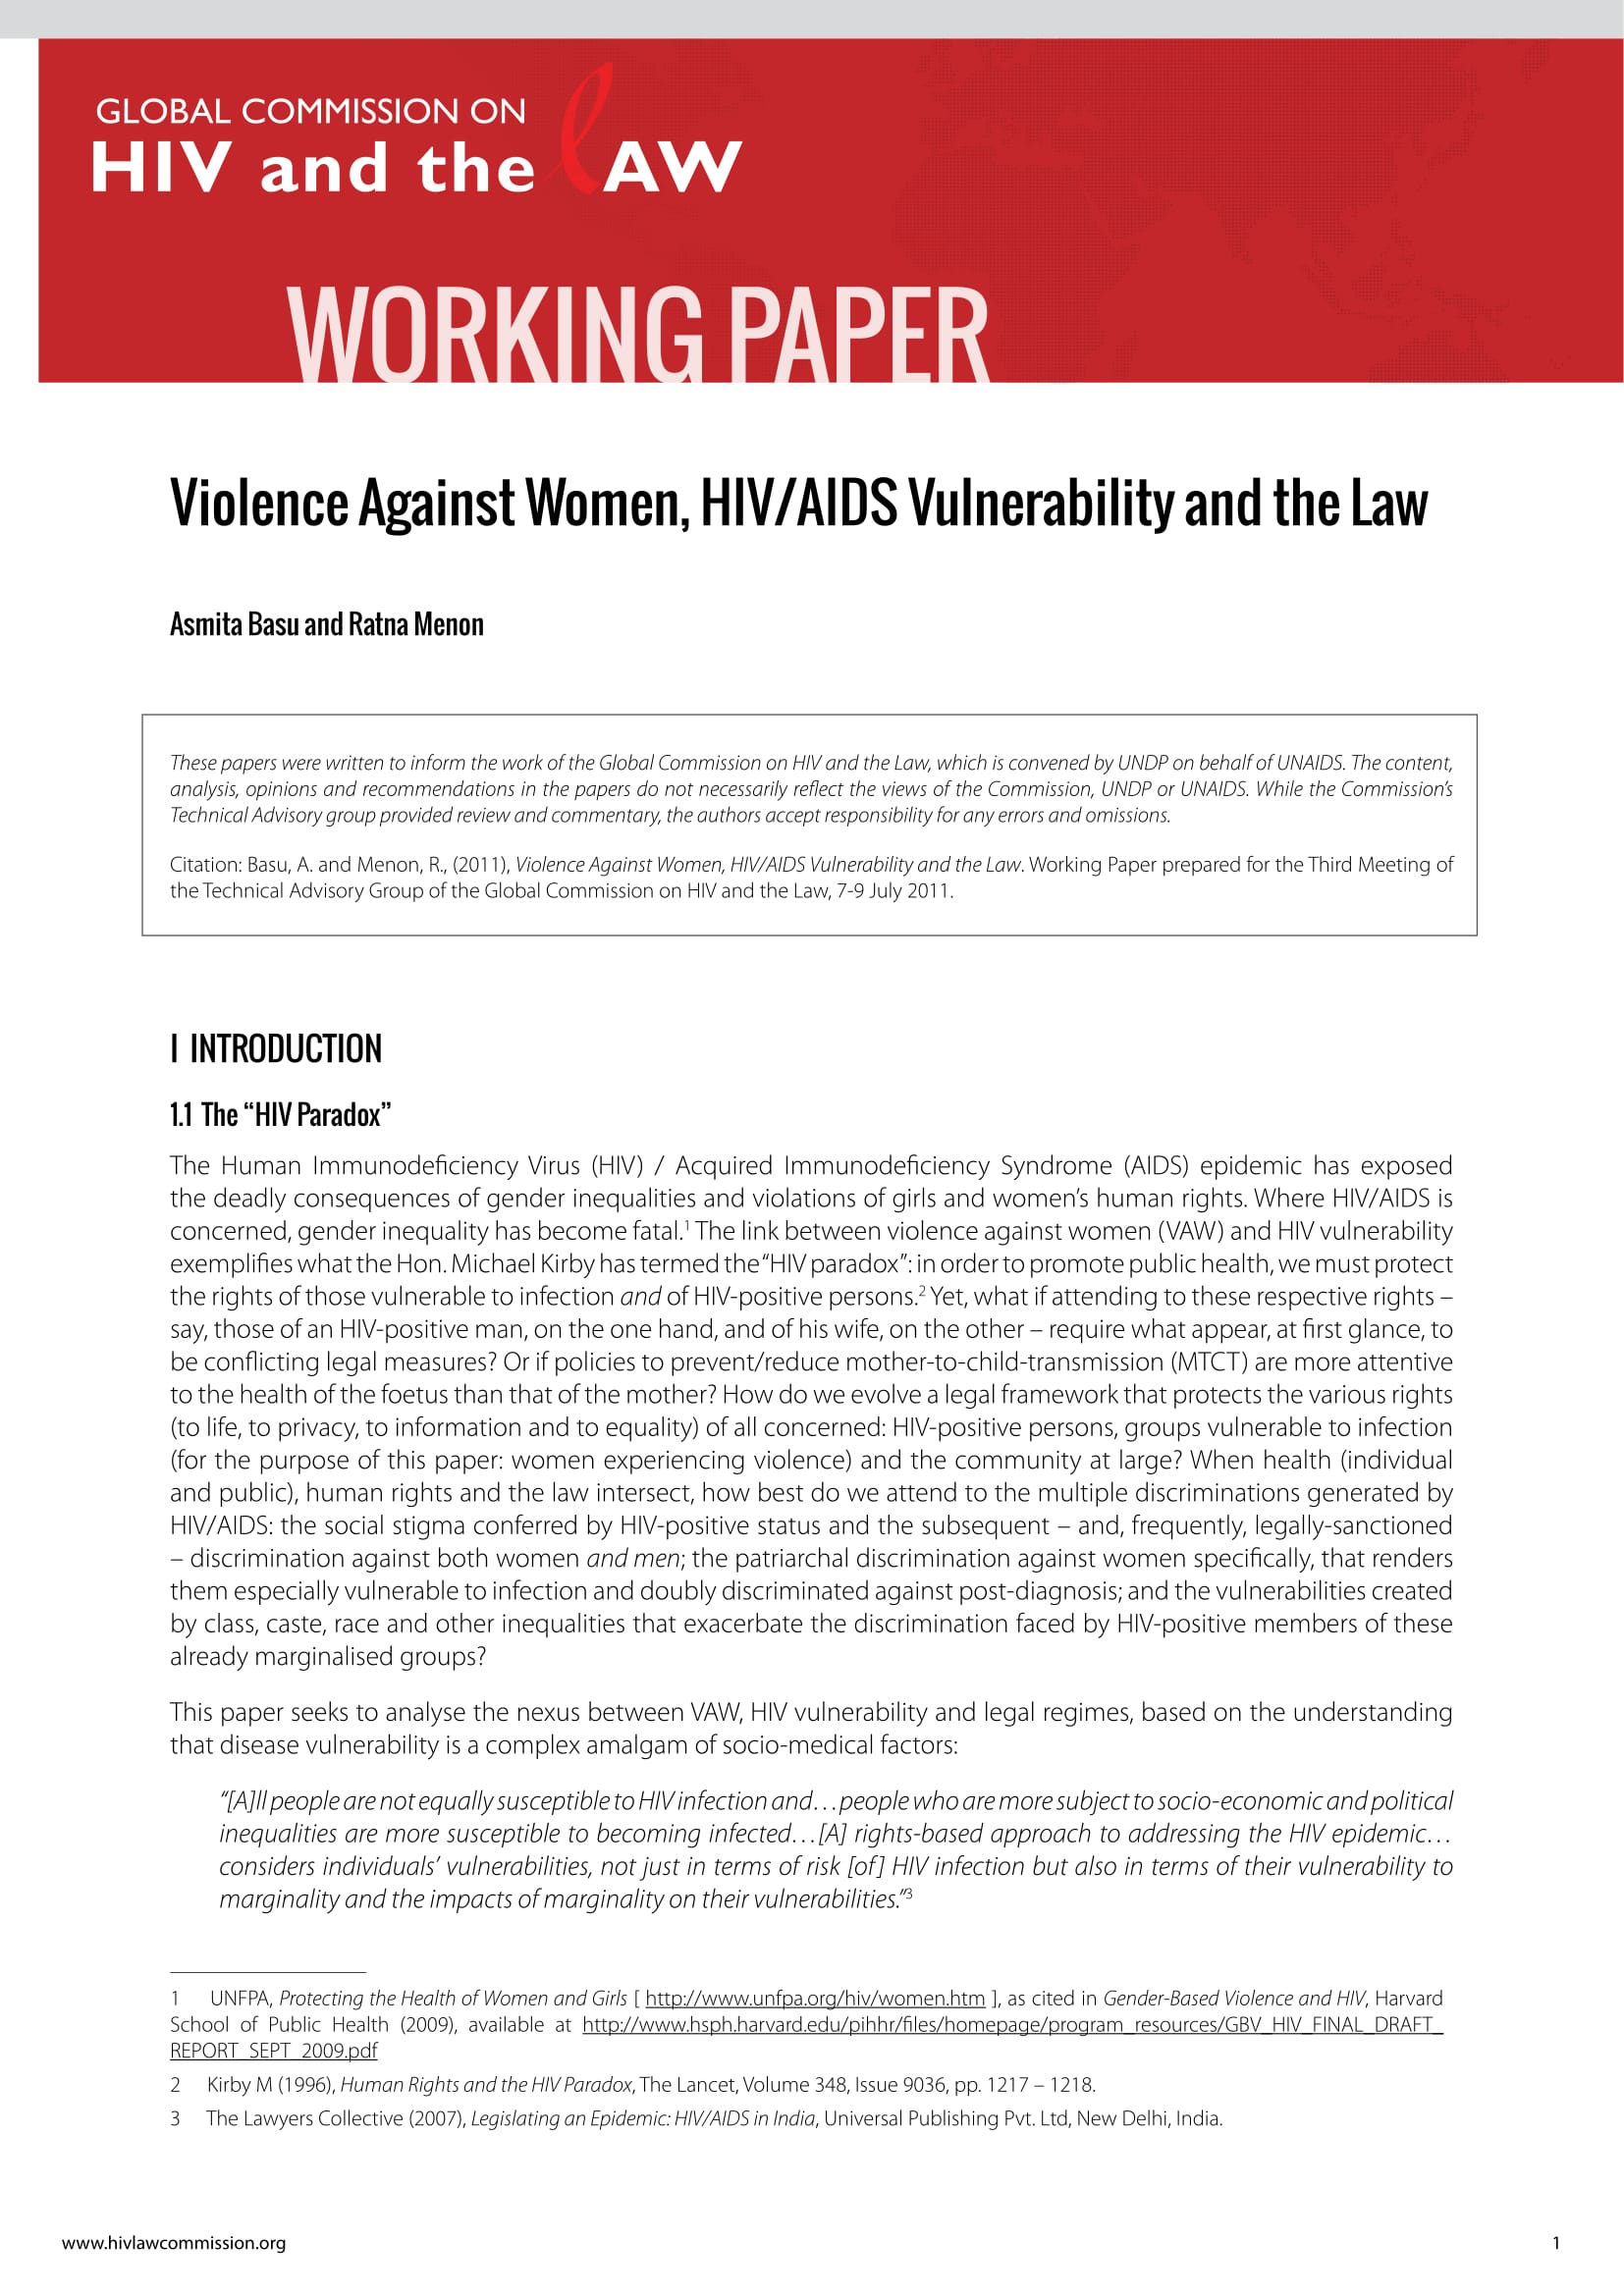 Violence Against Women, HIV/AIDS Vulnerability and the Law